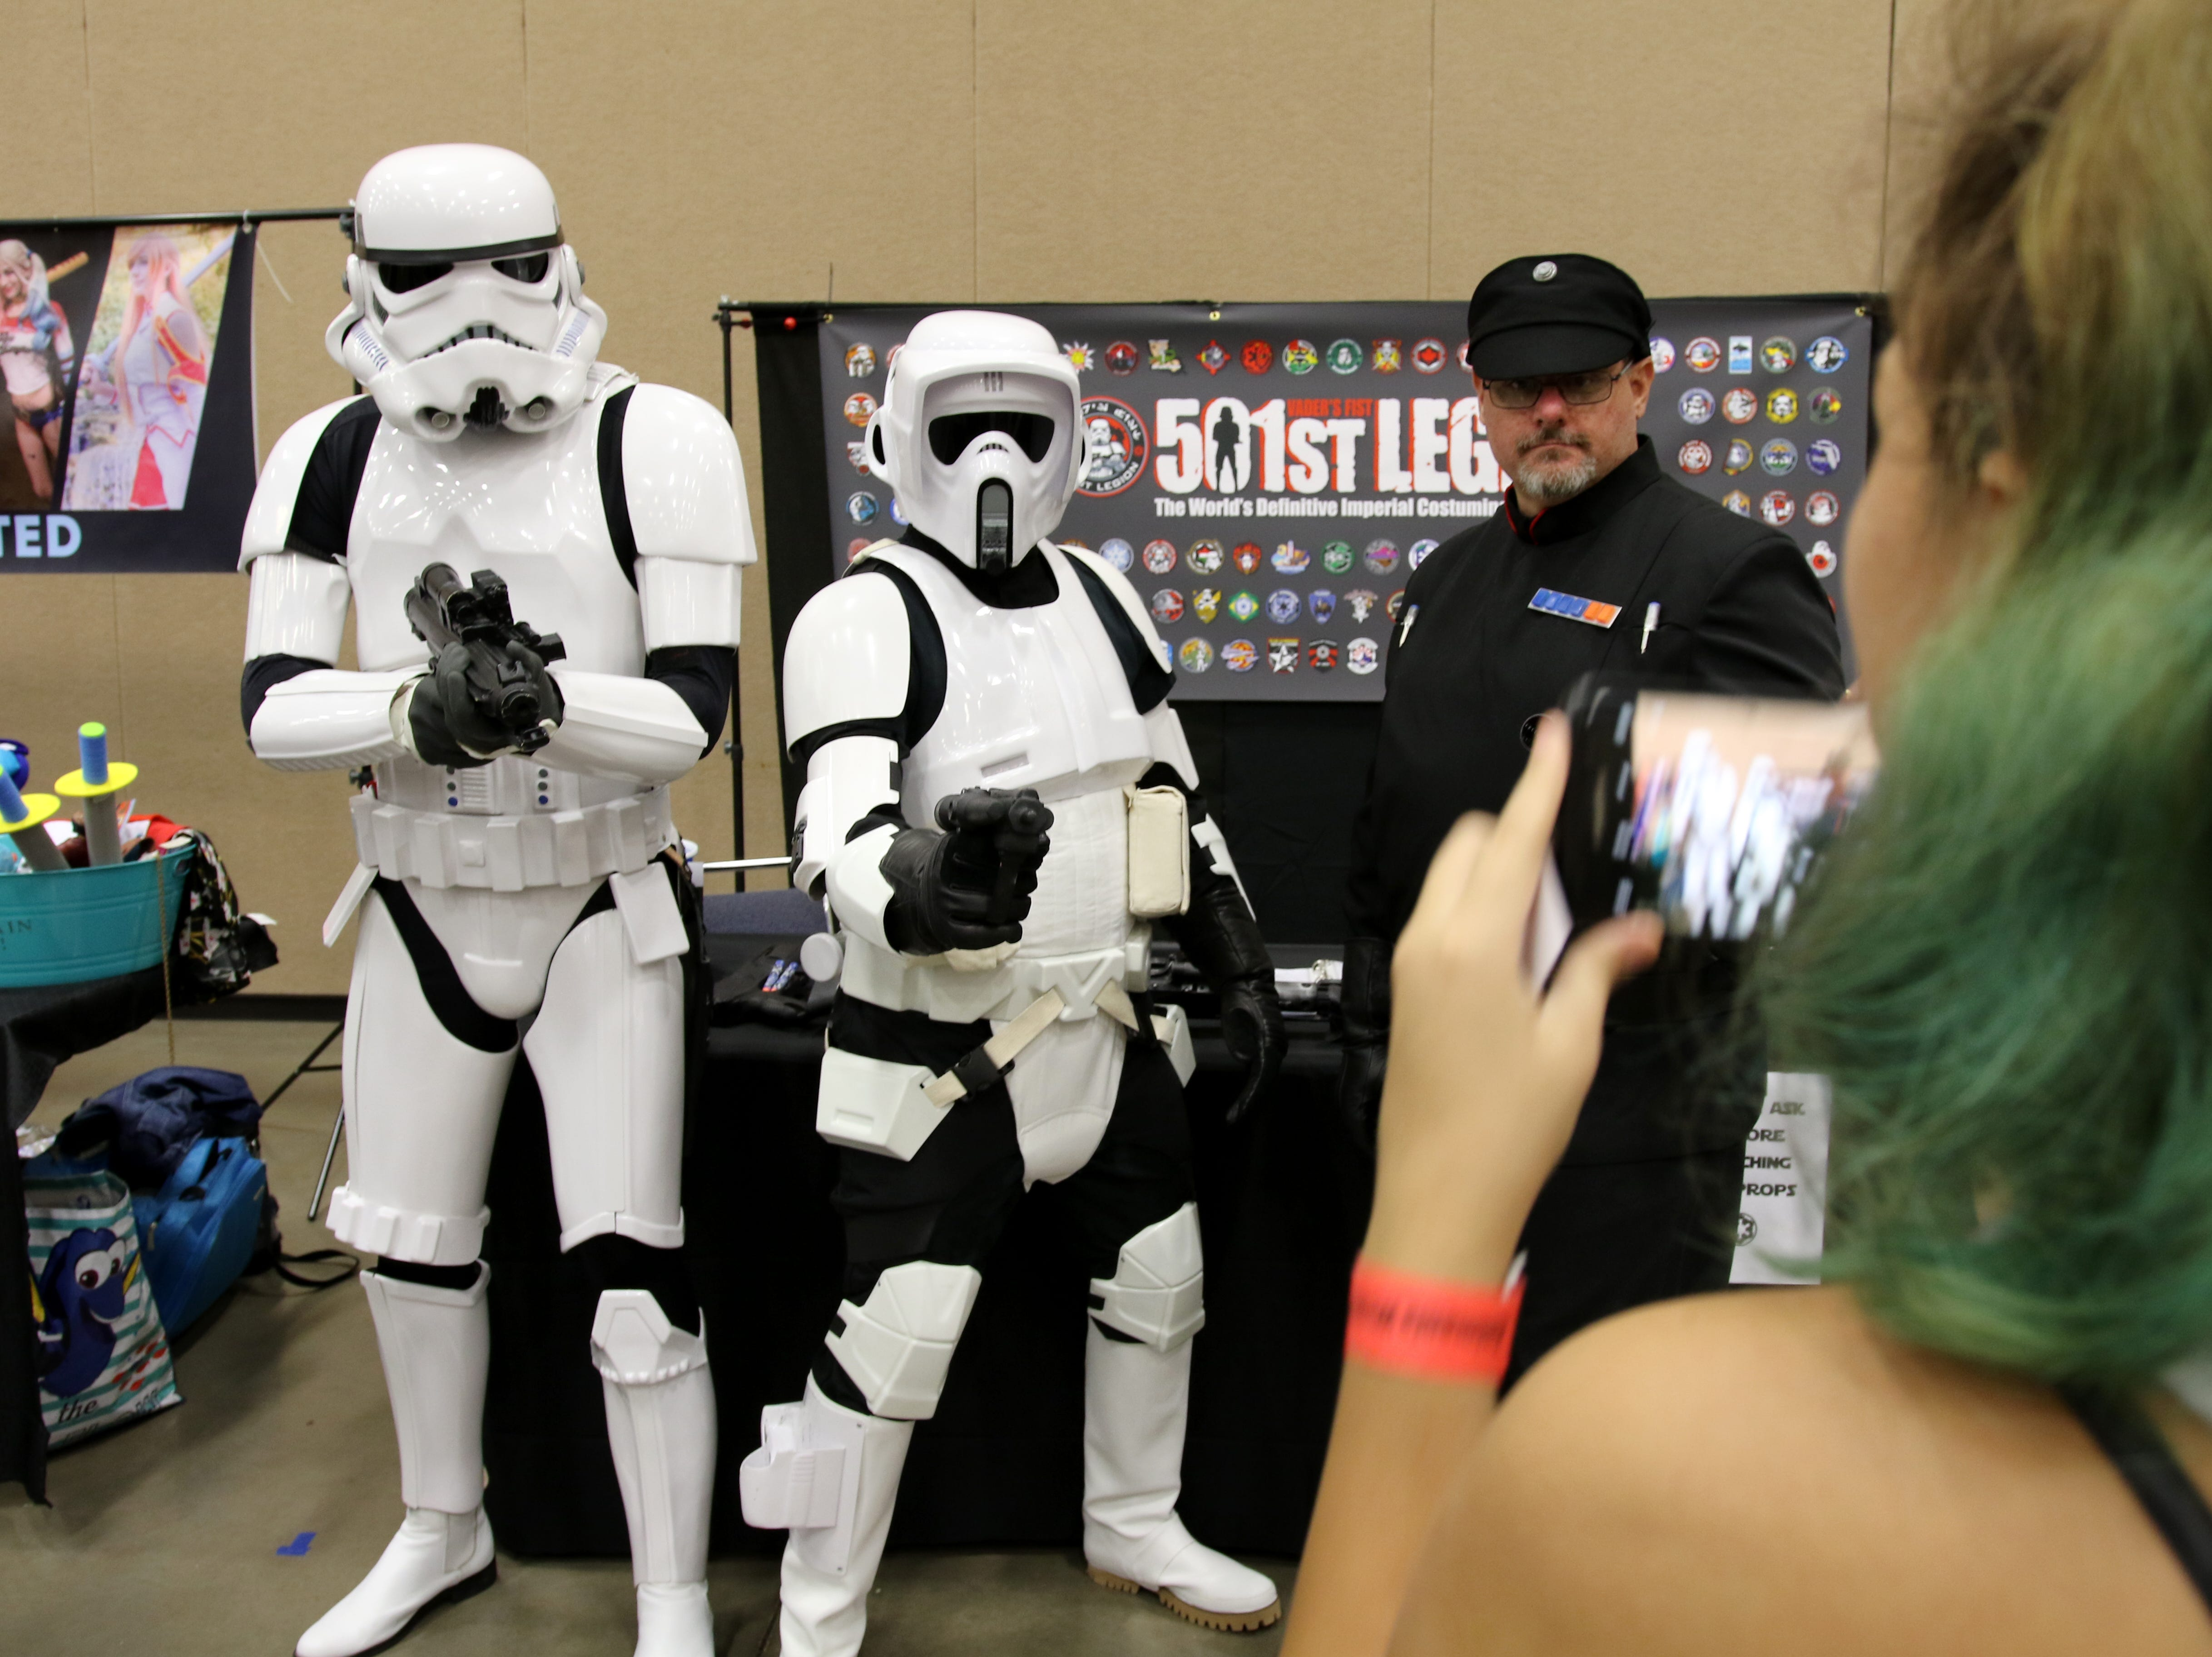 A popular activity at Animania is to take pictures of cosplayers Saturday, July 28, 2018, in the MPEC Ray Clymer Exhibit Hall.